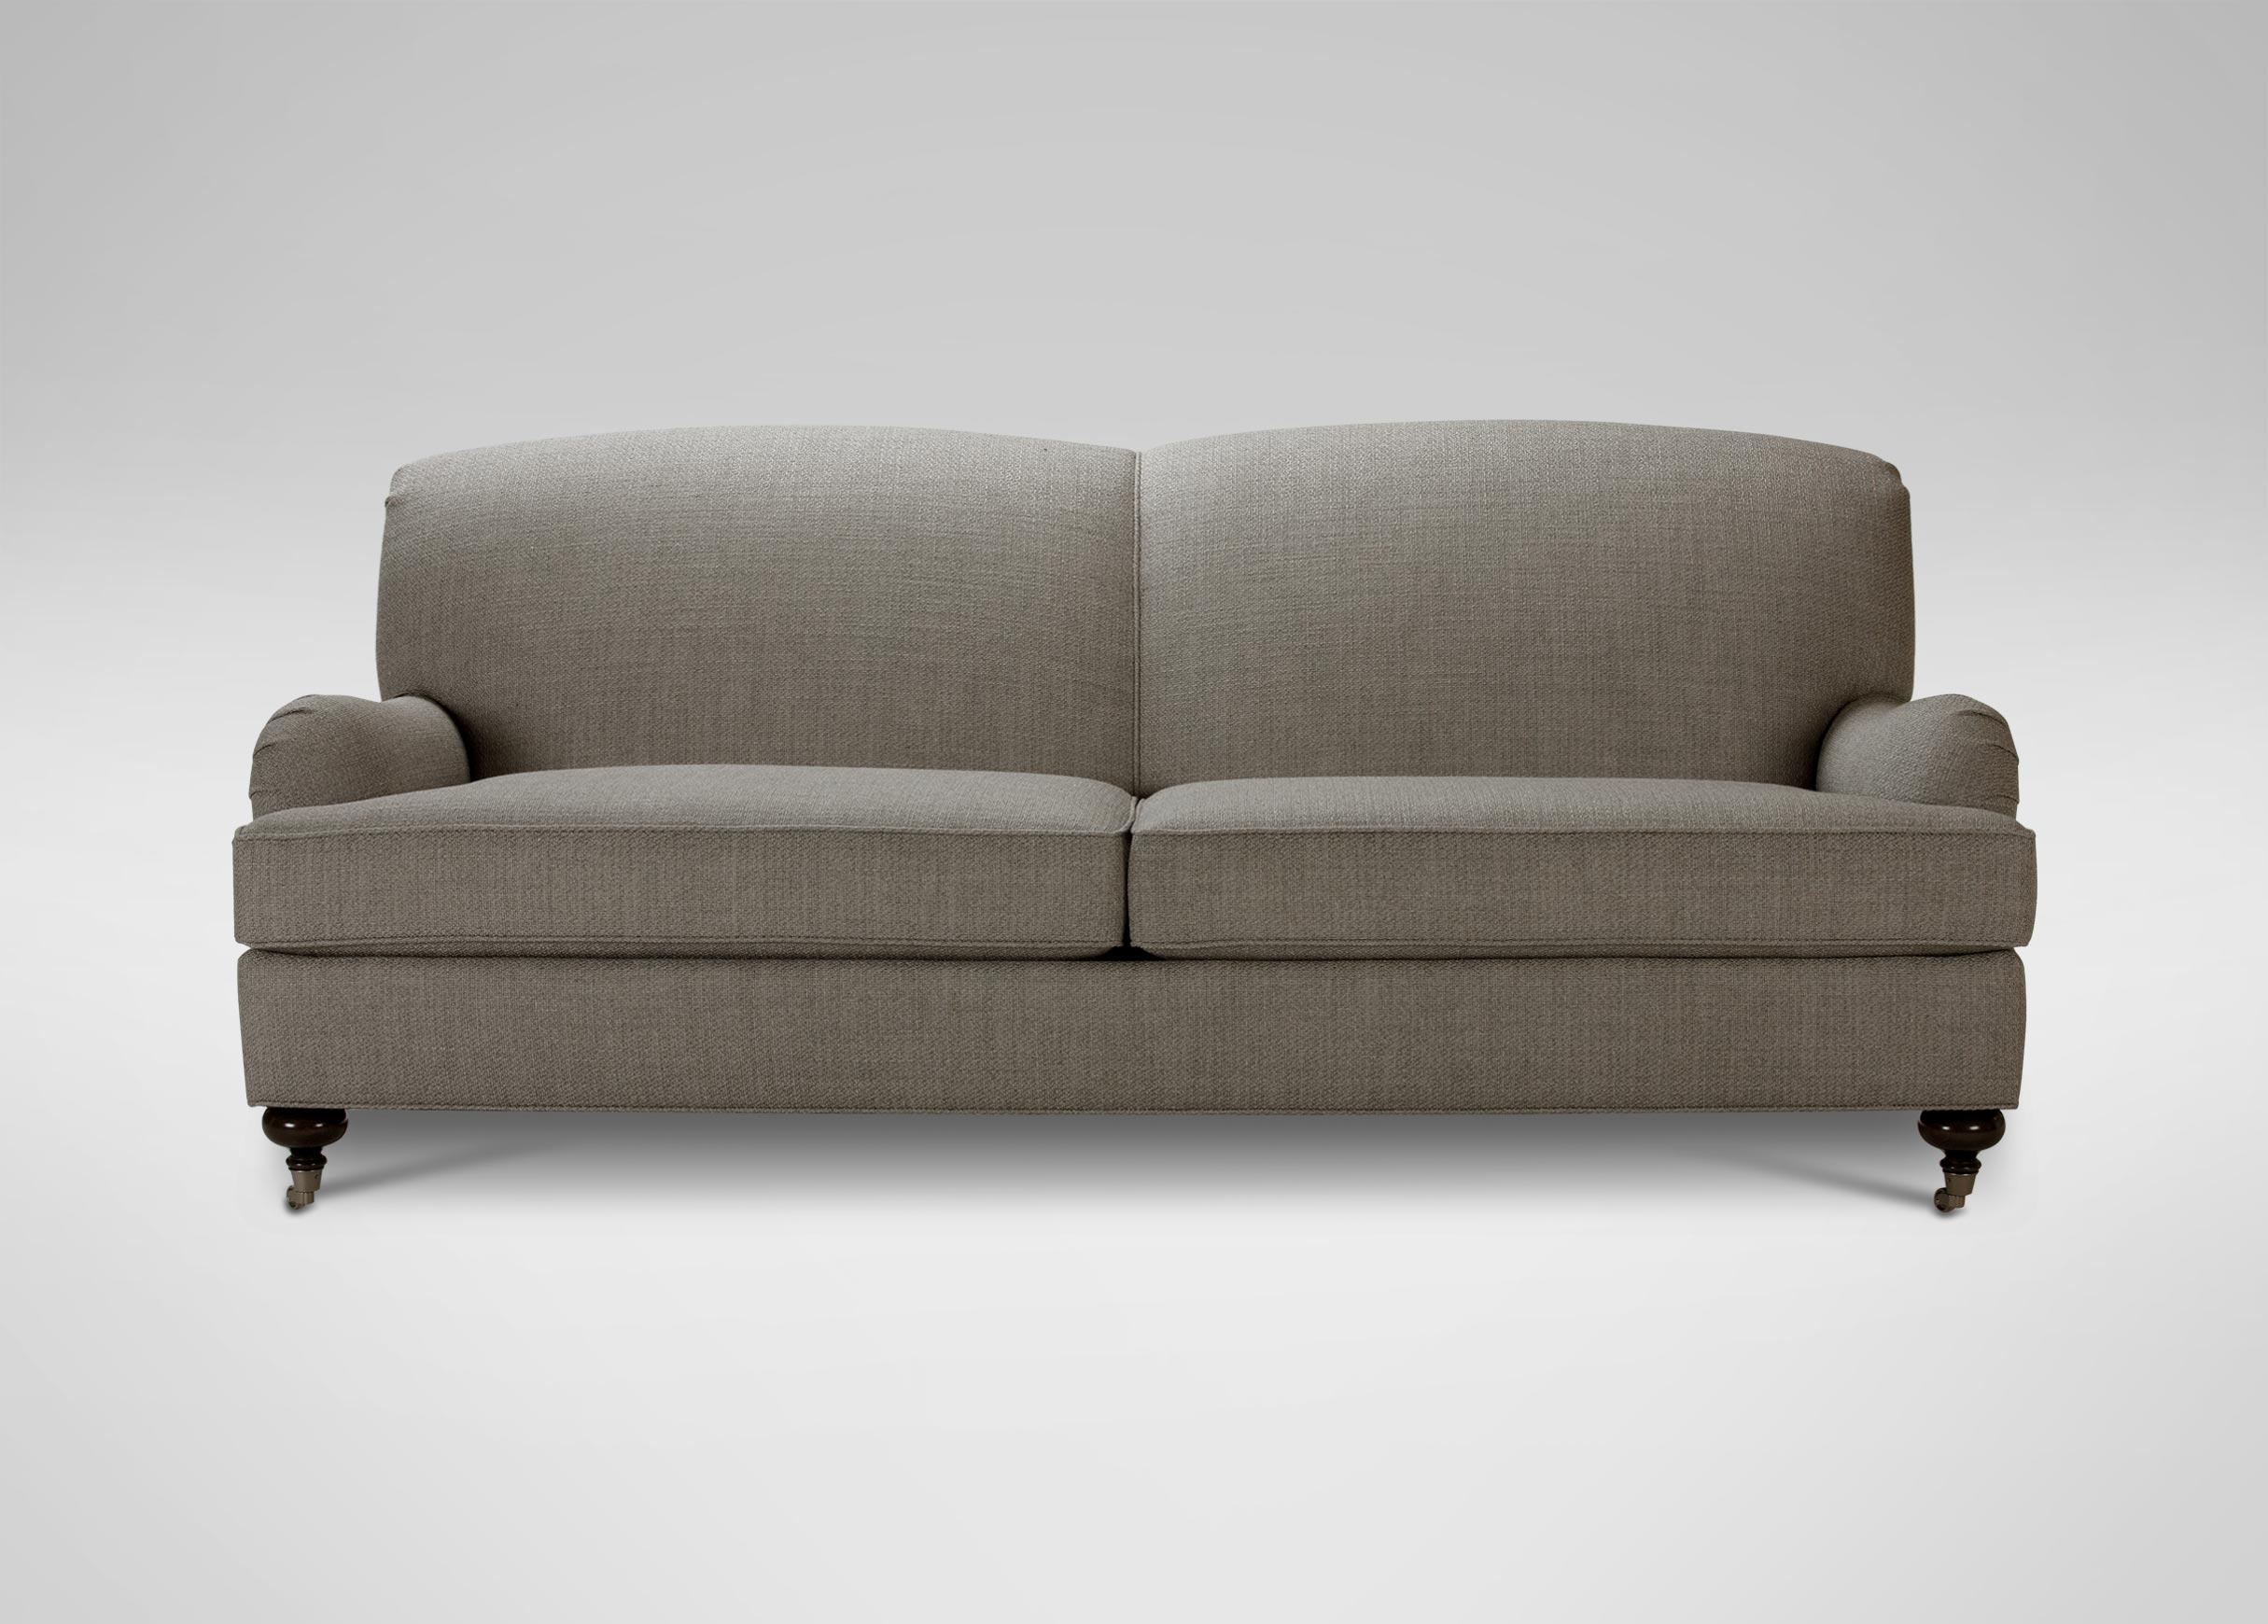 Oxford Sofa | Sofas & Loveseats In Ethan Allen Sofas And Chairs (View 8 of 20)